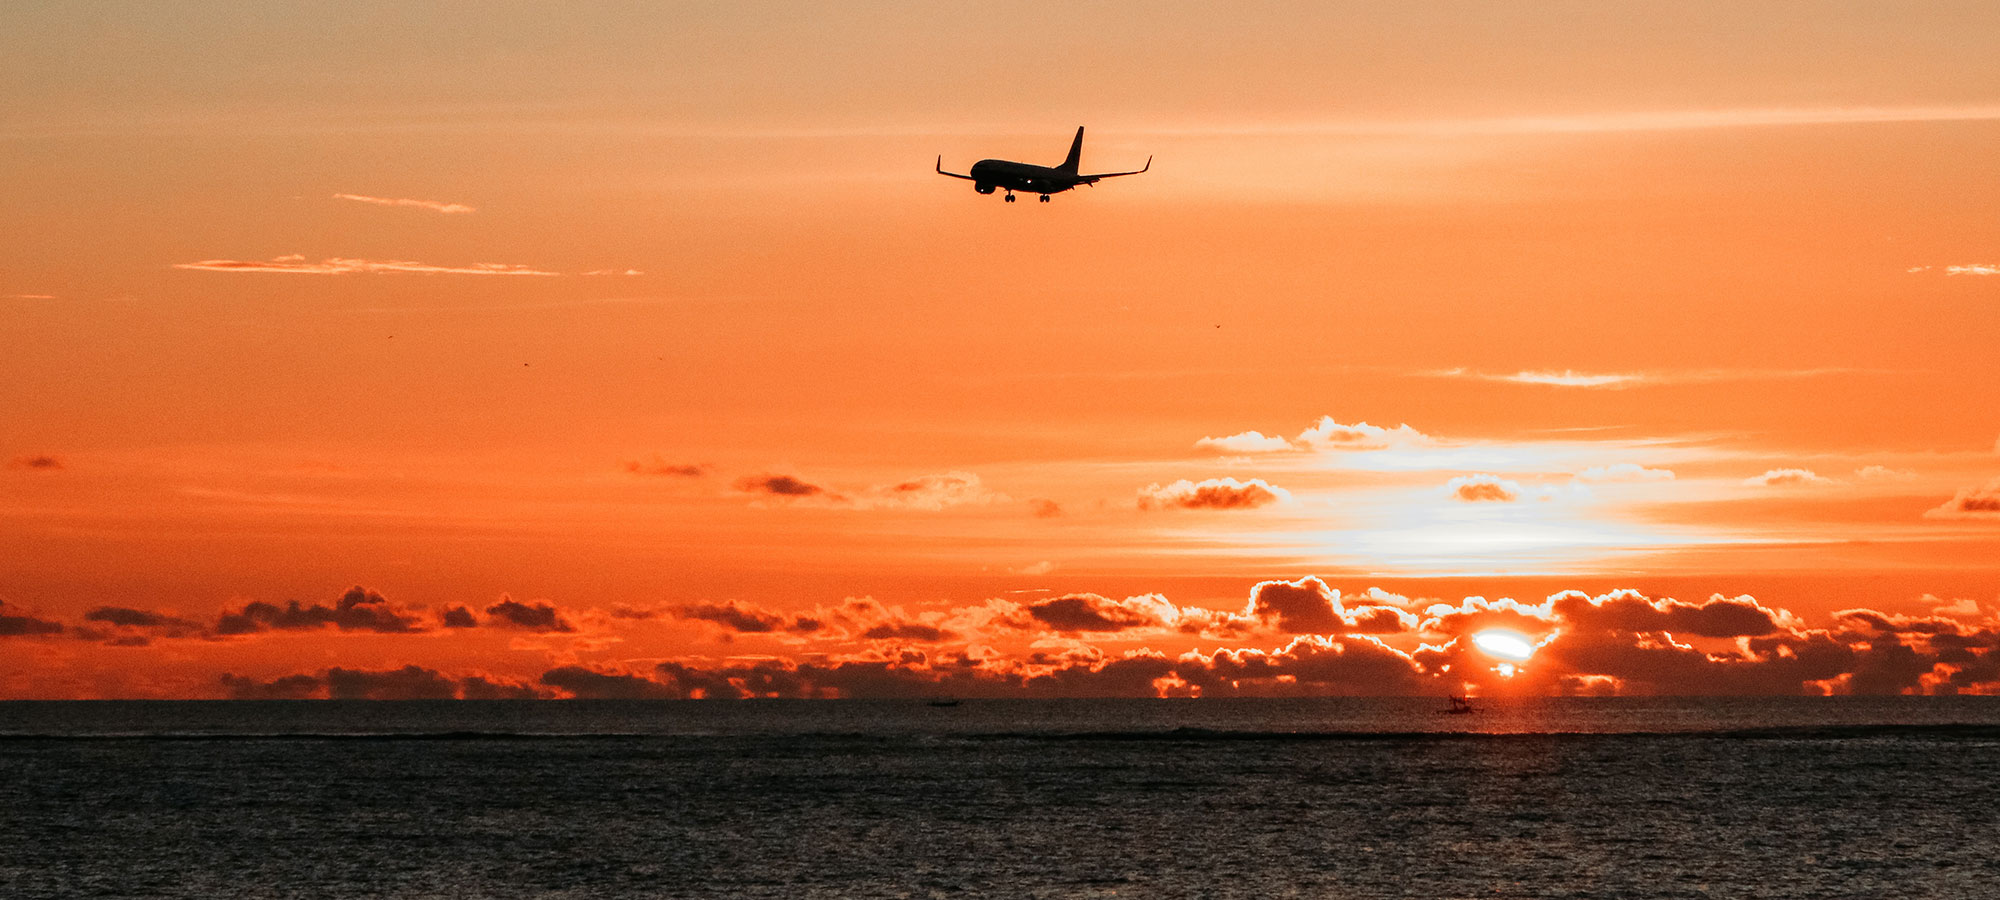 More direct flights to Croatia have been announced